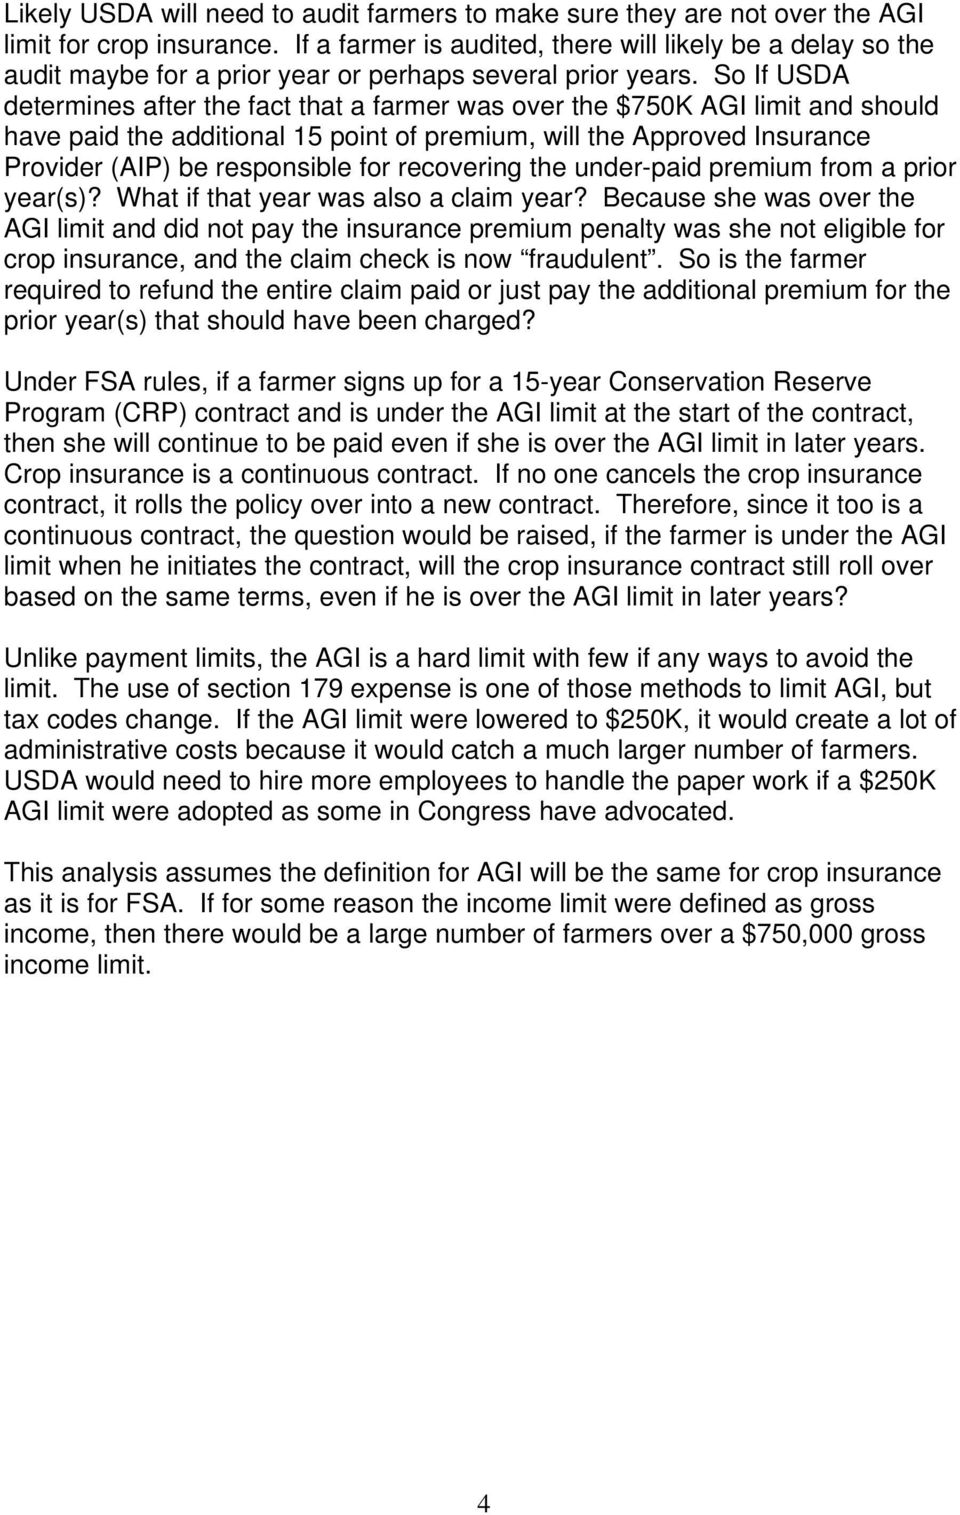 So If USDA determines after the fact that a farmer was over the $750K AGI limit and should have paid the additional 15 point of premium, will the Approved Insurance Provider (AIP) be responsible for